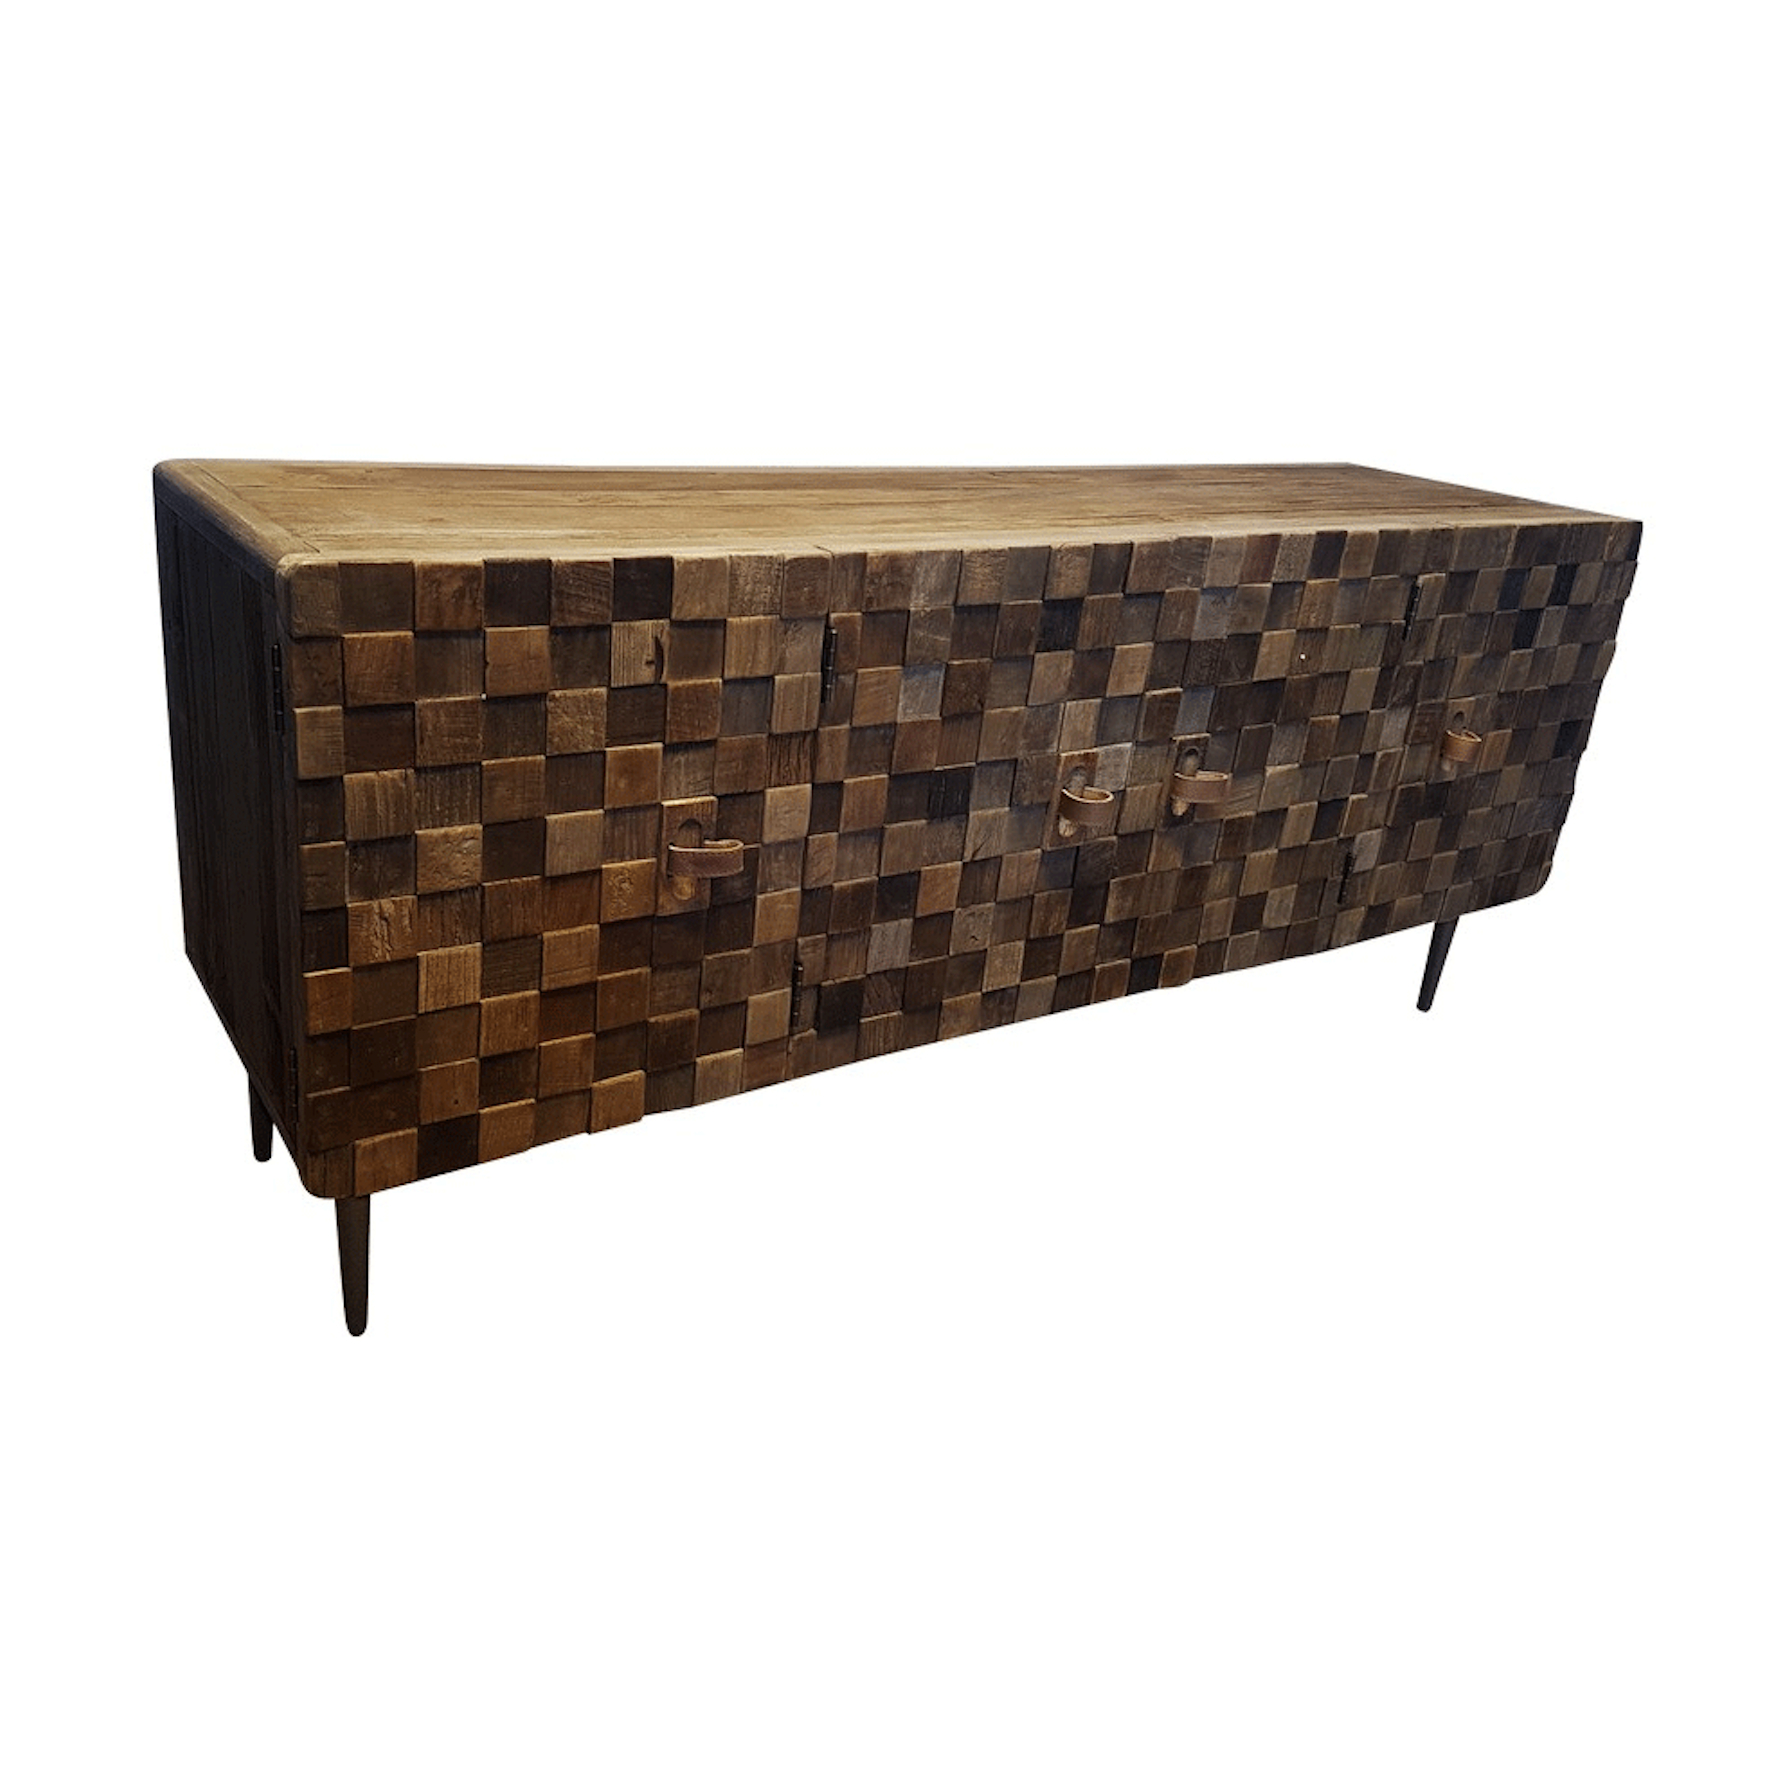 Baltic Sideboard – Reclaimed Elm/iron 2010Mm – Urbano Interiors With Regard To Most Recently Released Reclaimed Elm Iron Coffee Tables (View 2 of 20)